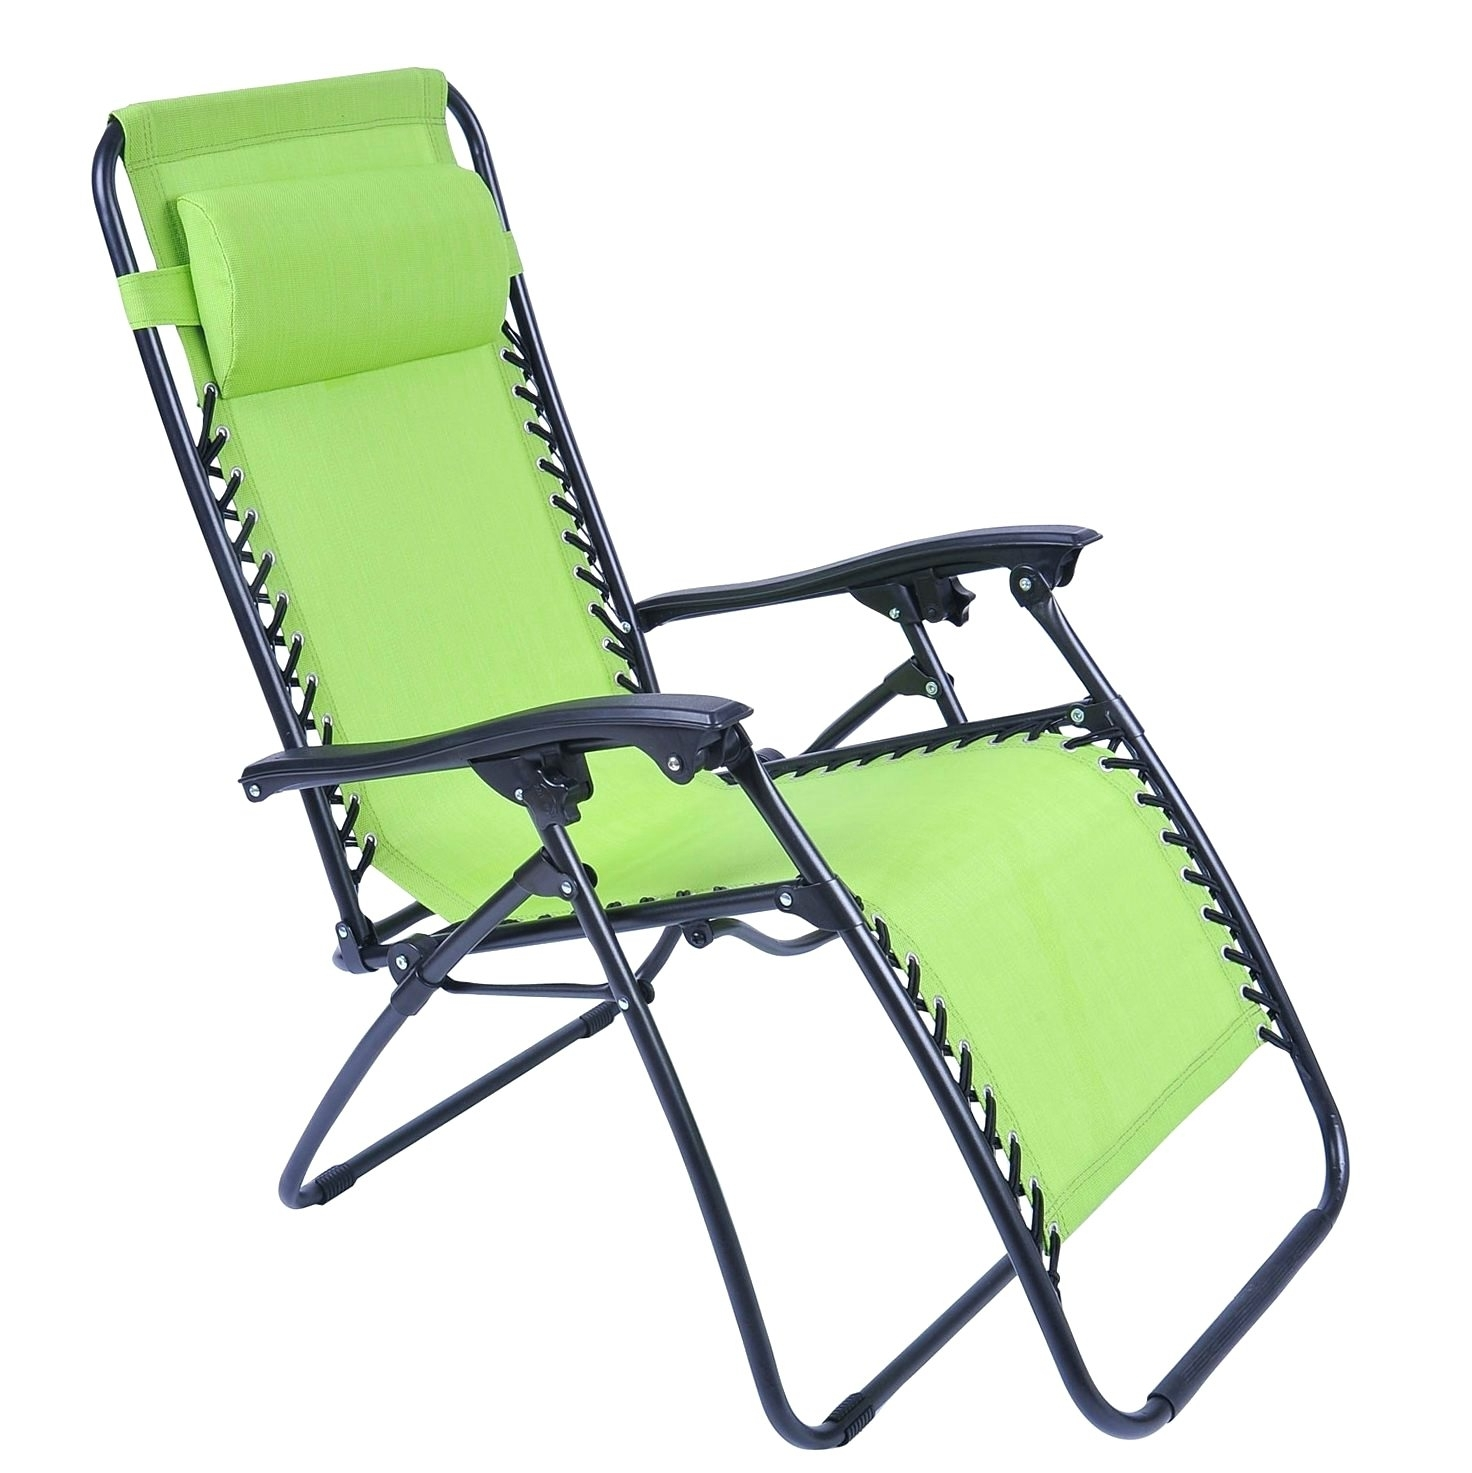 2018 Chaise Lounge Outdoor Furniture Boca Chaise Lounge Chair Outdoor Intended For Boca Chaise Lounge Outdoor Chairs With Pillows (View 12 of 15)